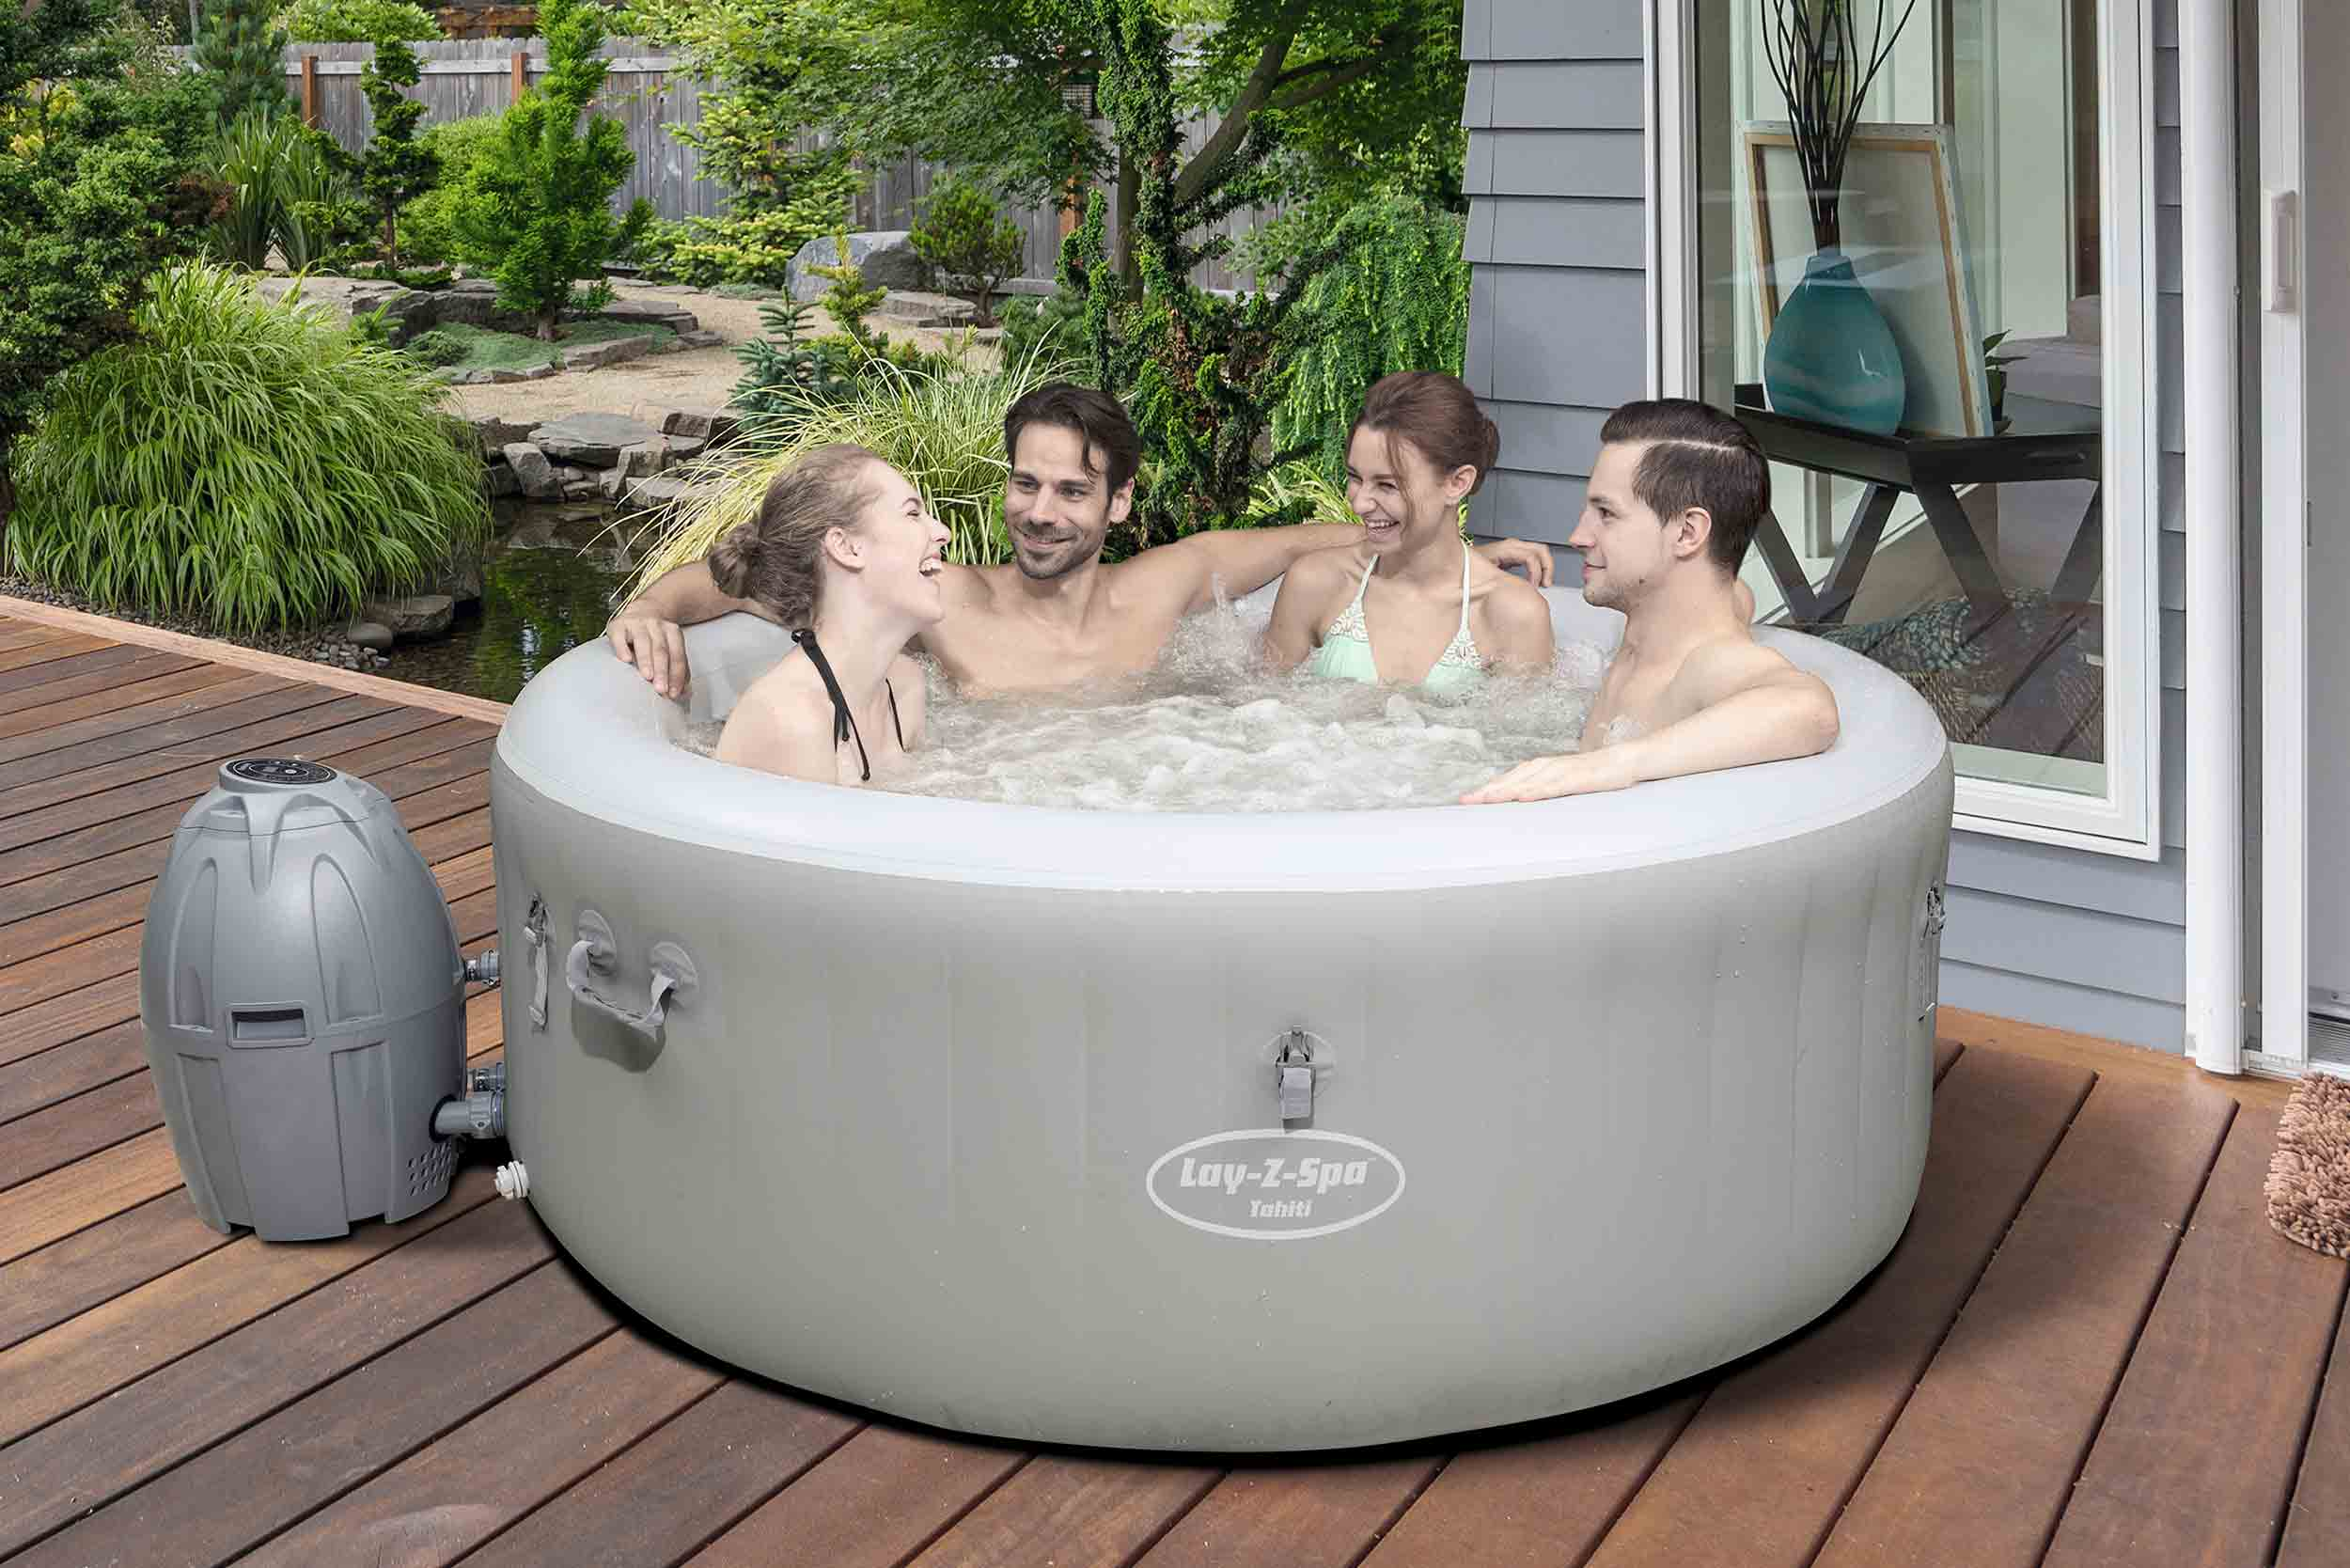 coupon code united states get cheap Spa gonflable de 4 à 6 places rond Tahiti - Lay-Z-Spa